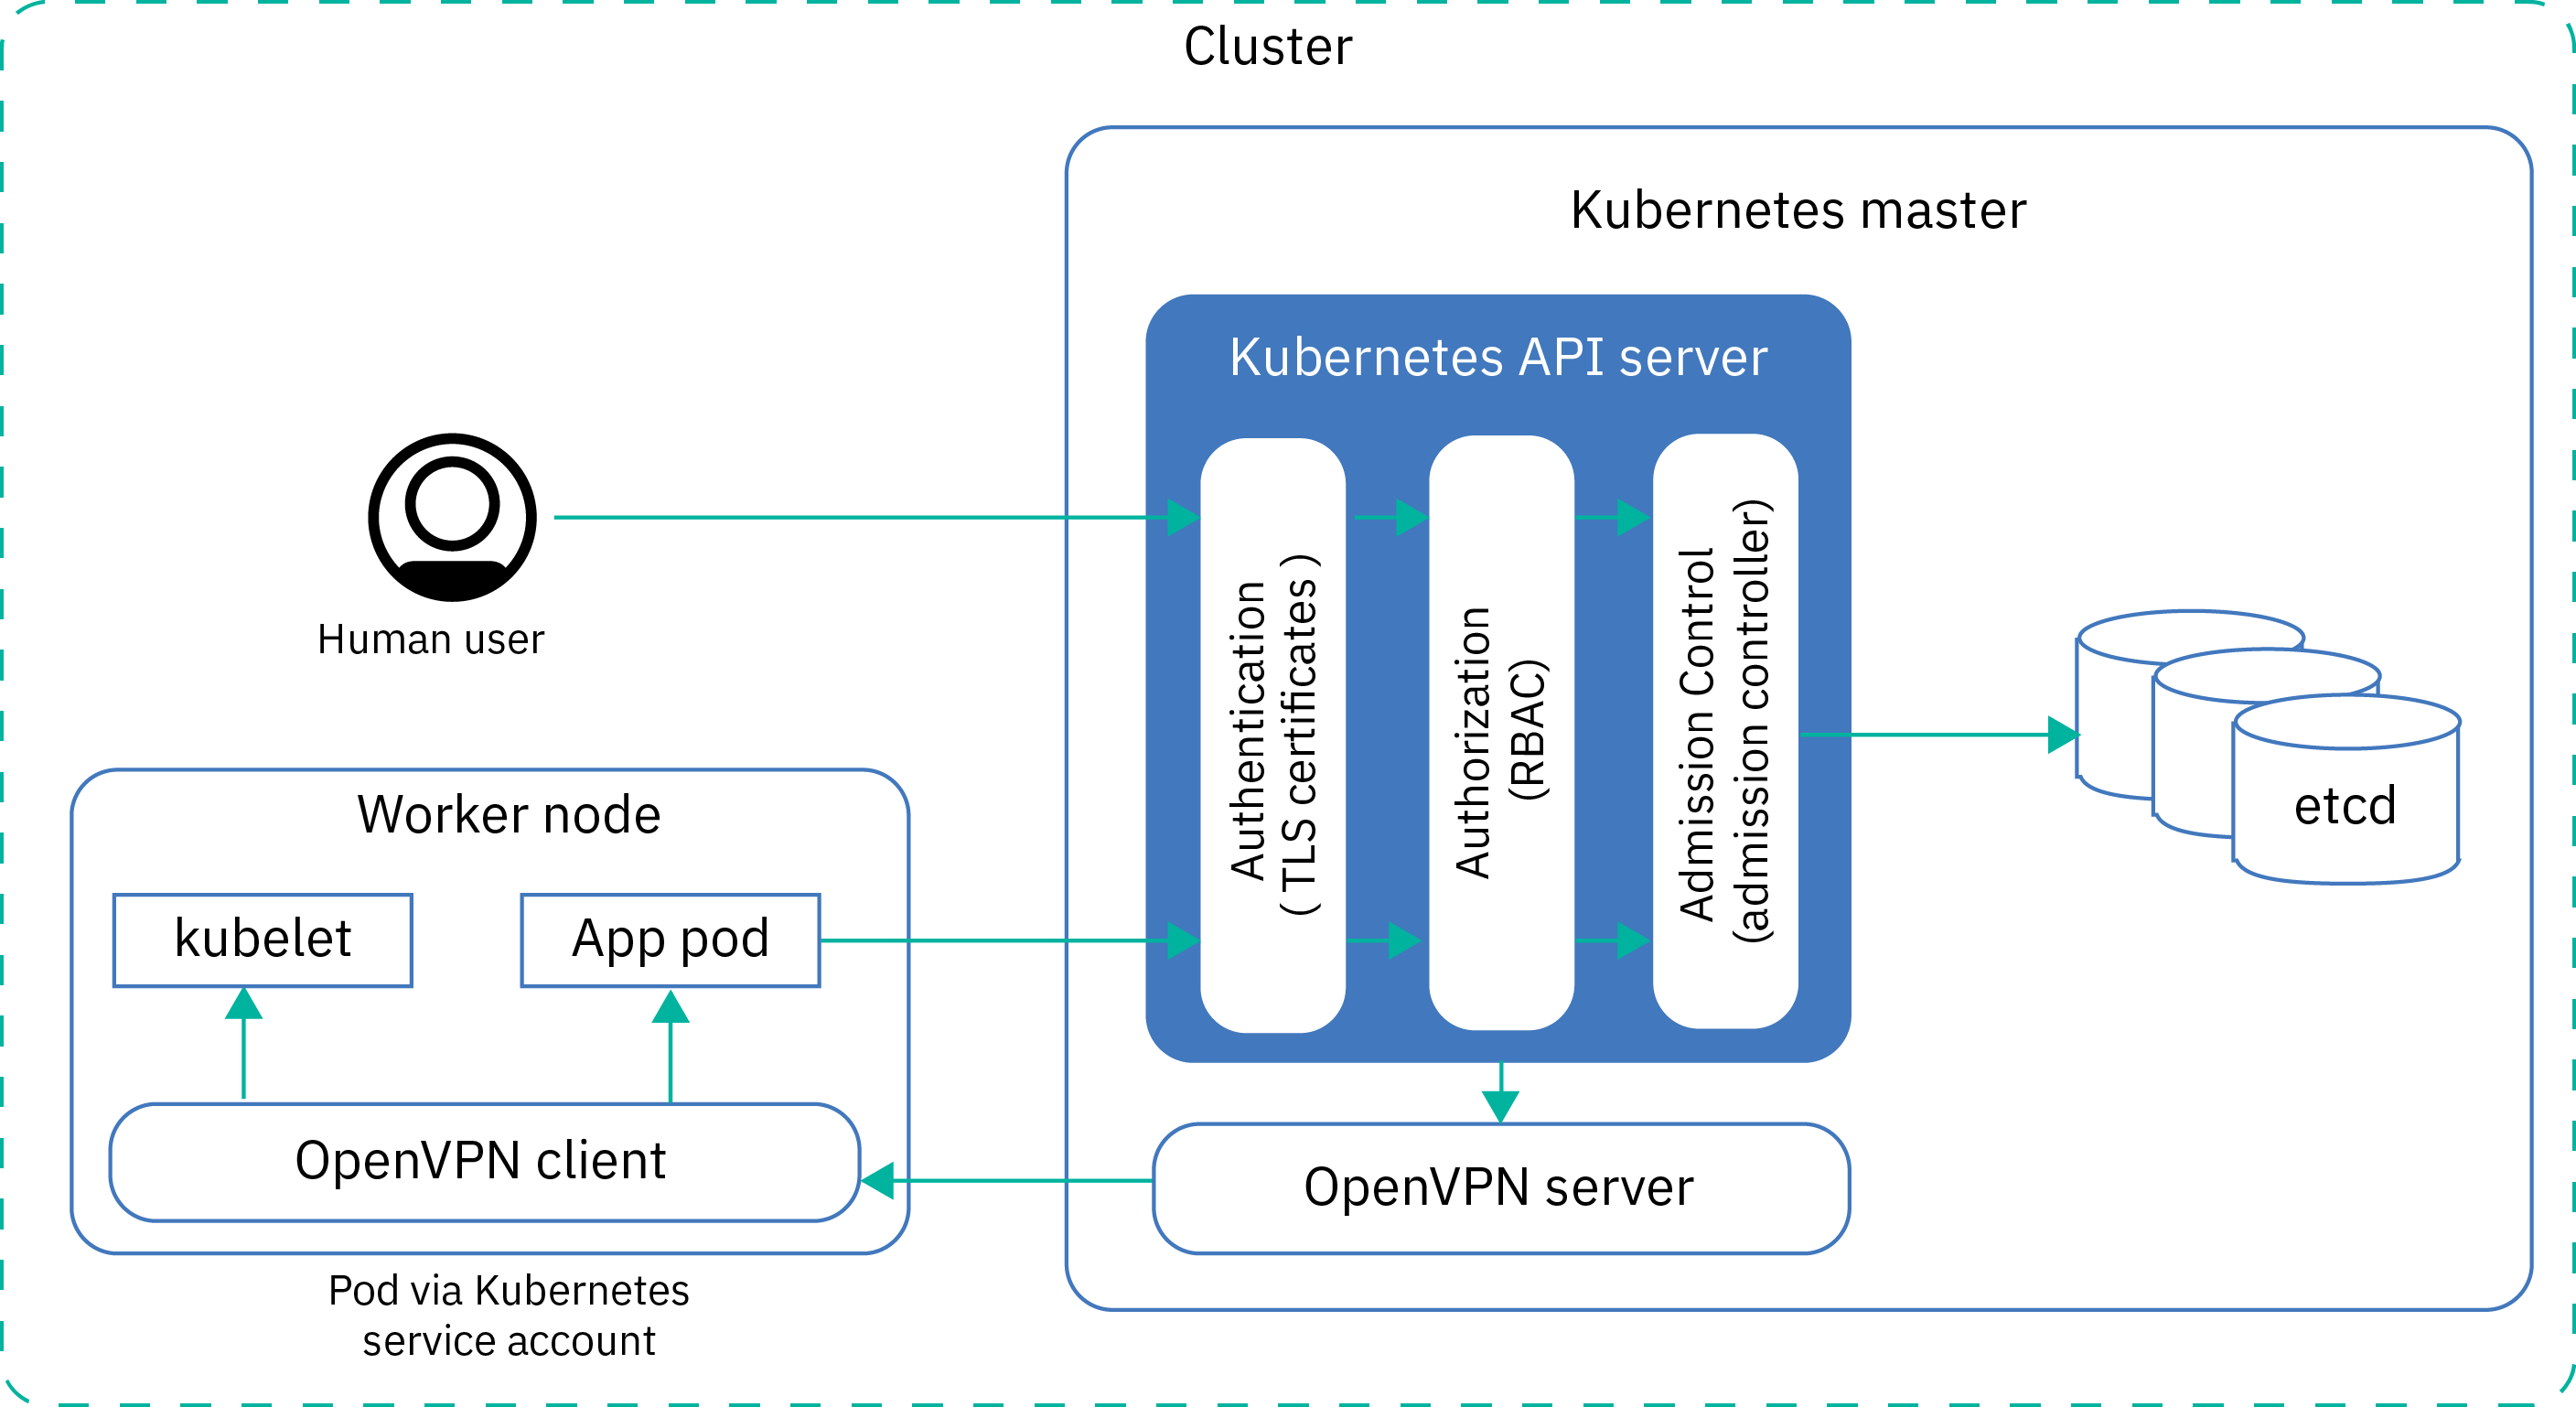 What Are the Drawbacks of Kubernetes